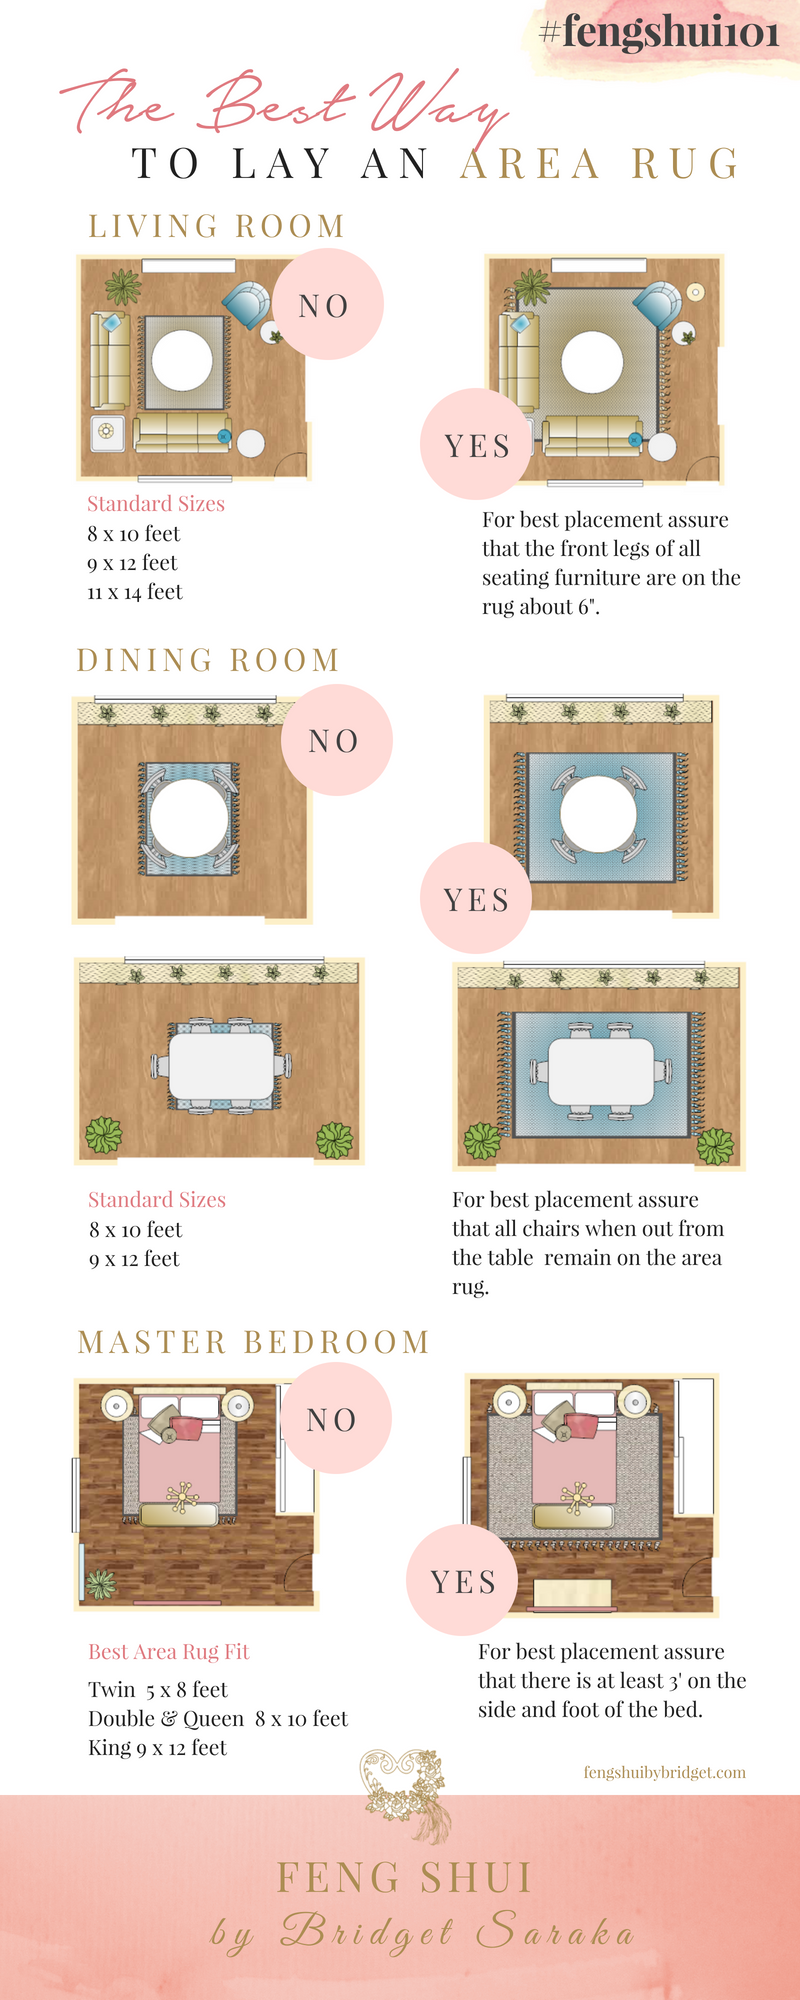 Lay an Area Rug #fengshui101